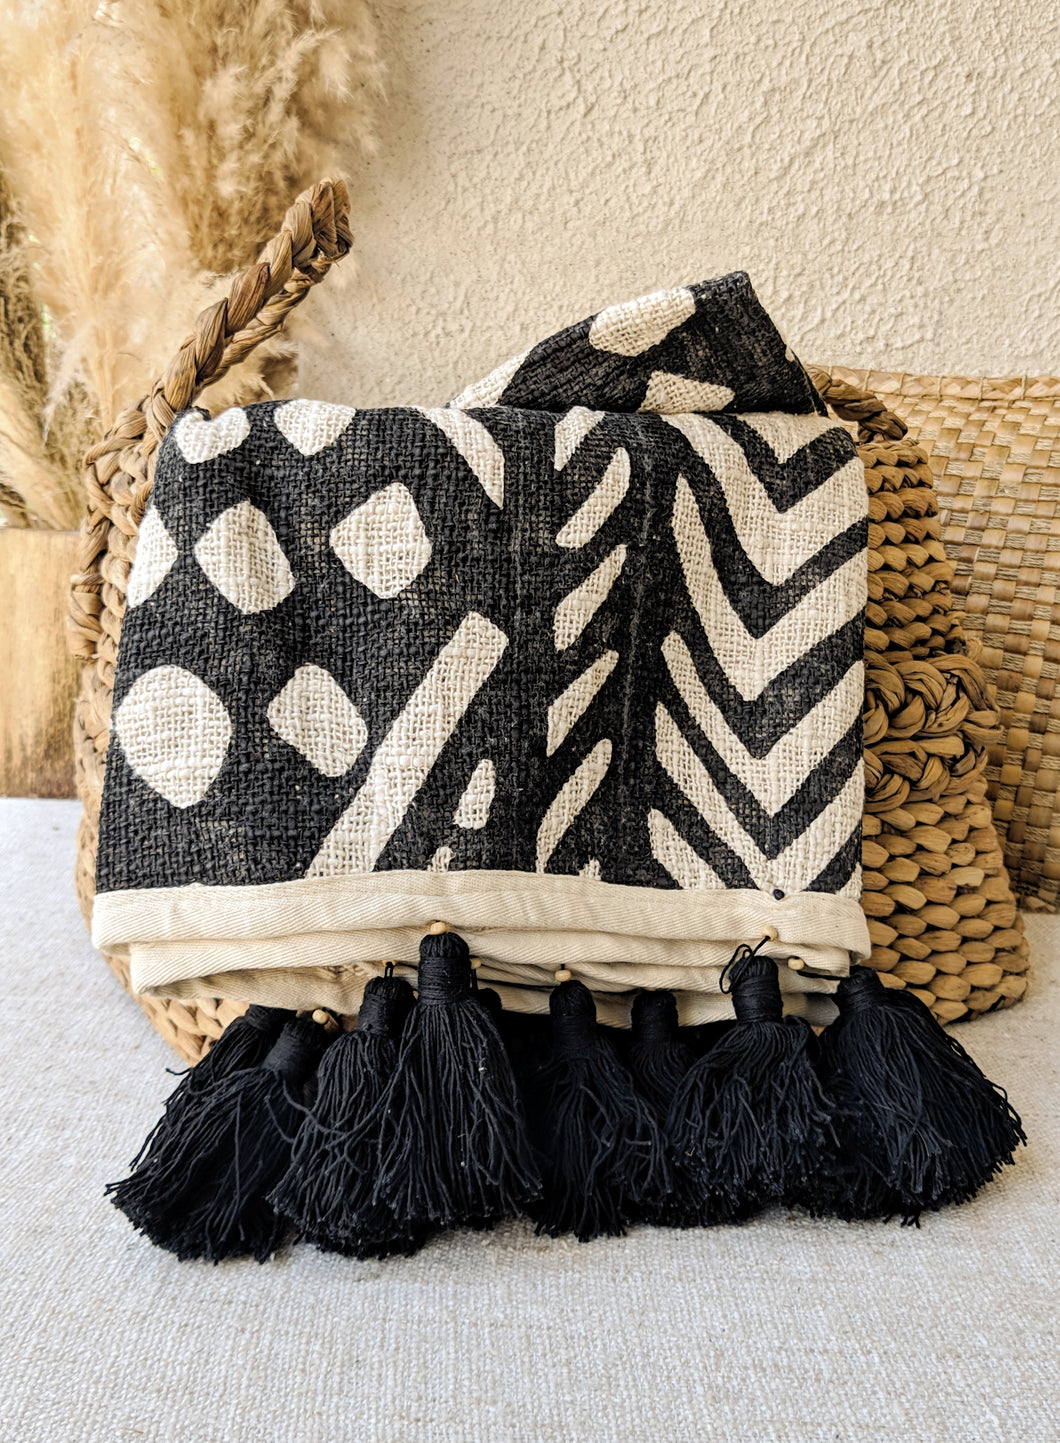 RAW COTTON TRIBAL PATTERN THROW WITH BLACK TASSELS